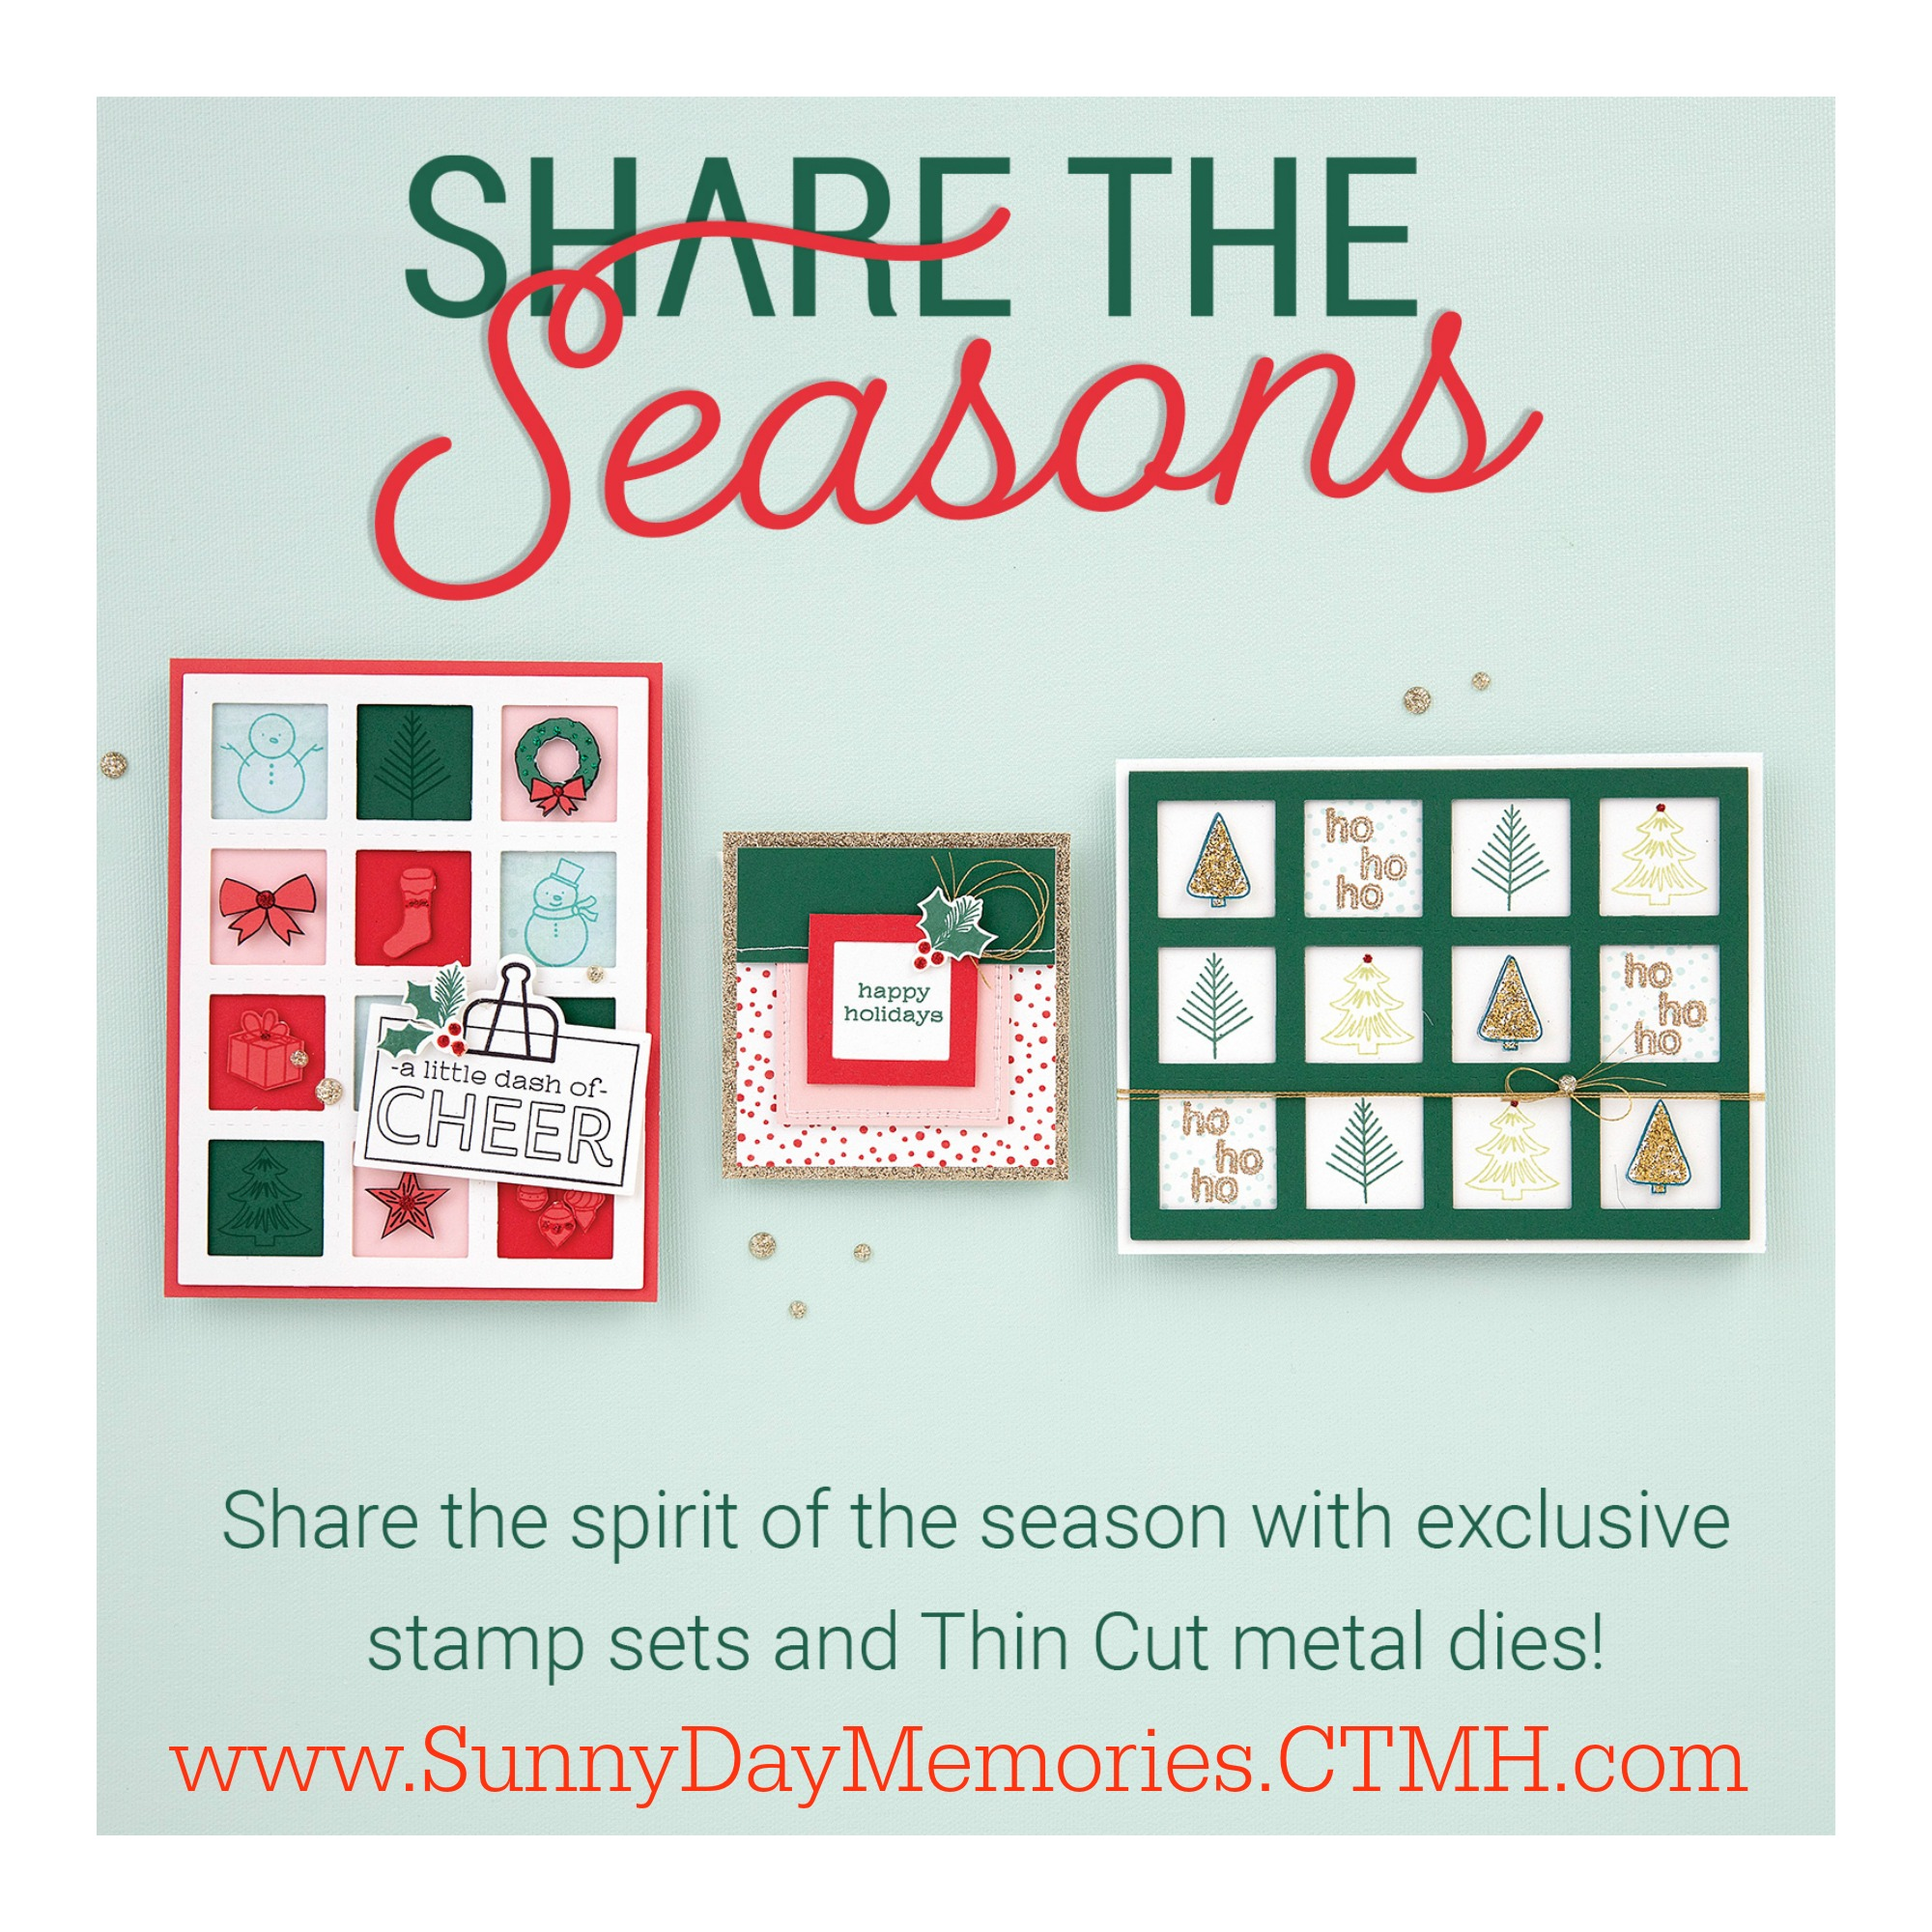 CTMH Share the Seasons September Special